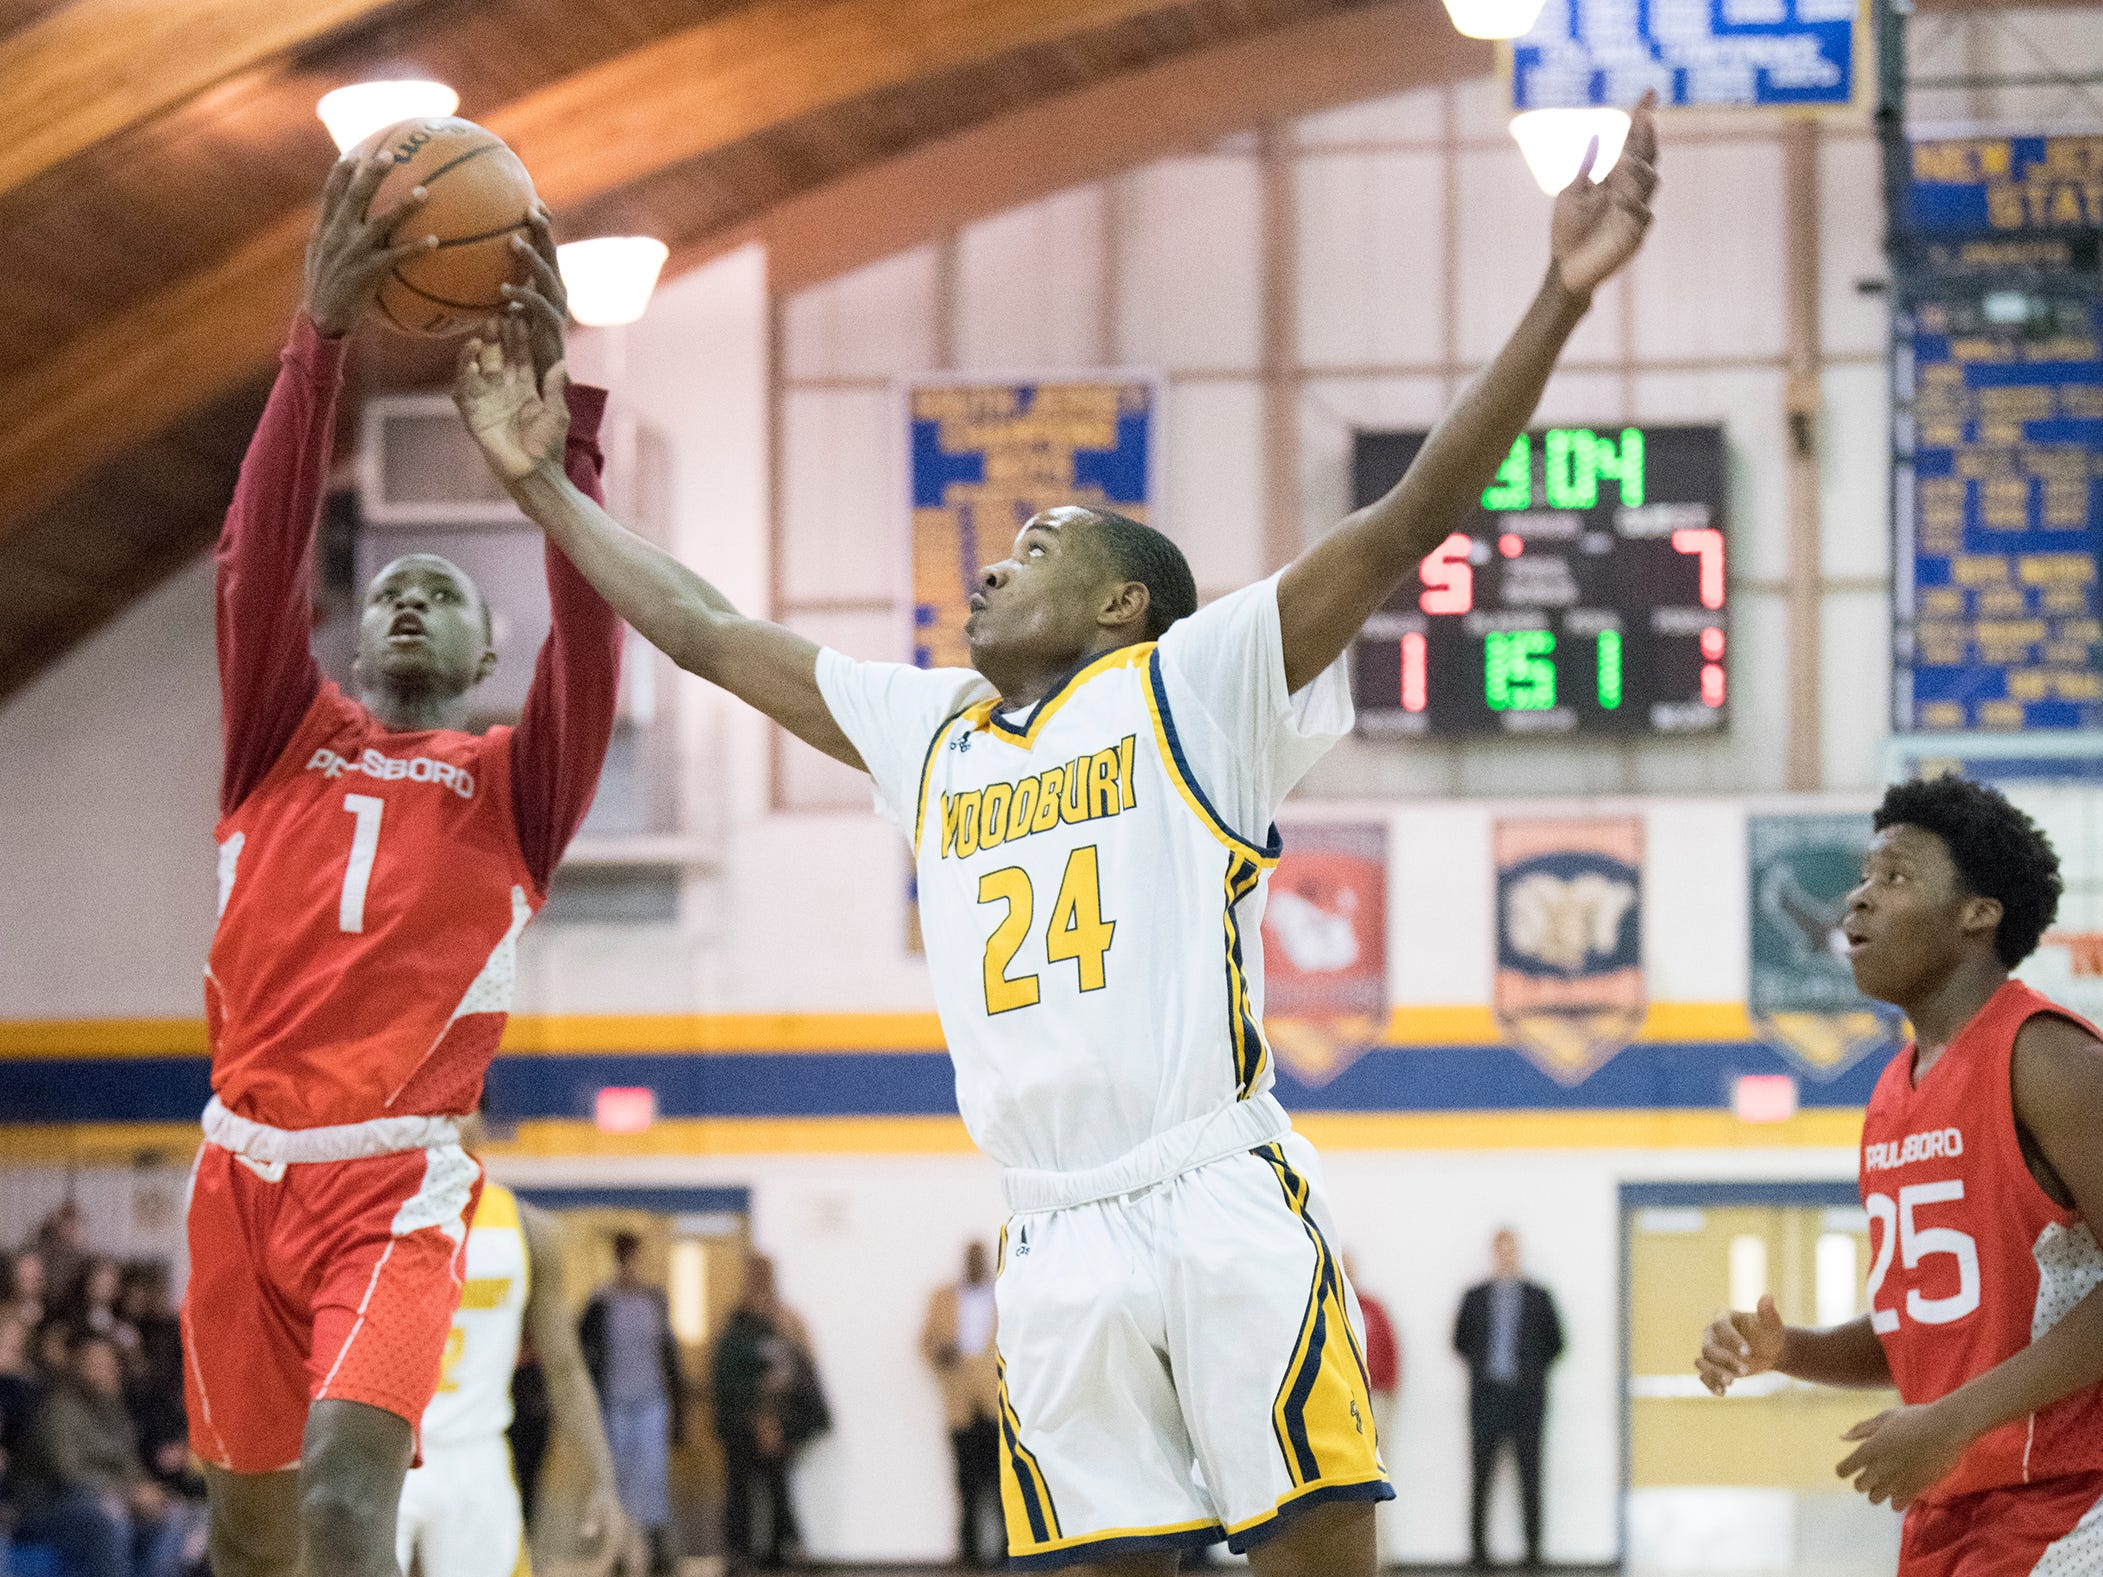 Paulsboro's Keyshun Sanders grabs a rebound next to Woodbury's Rahjan Thomas during the 1st quarter of the South Jersey Group 1, first round boys basketball playoff game played at Woodbury High School on Tuesday, February 26, 2019.   Woodbury defeated Paulsboro, 69-41.